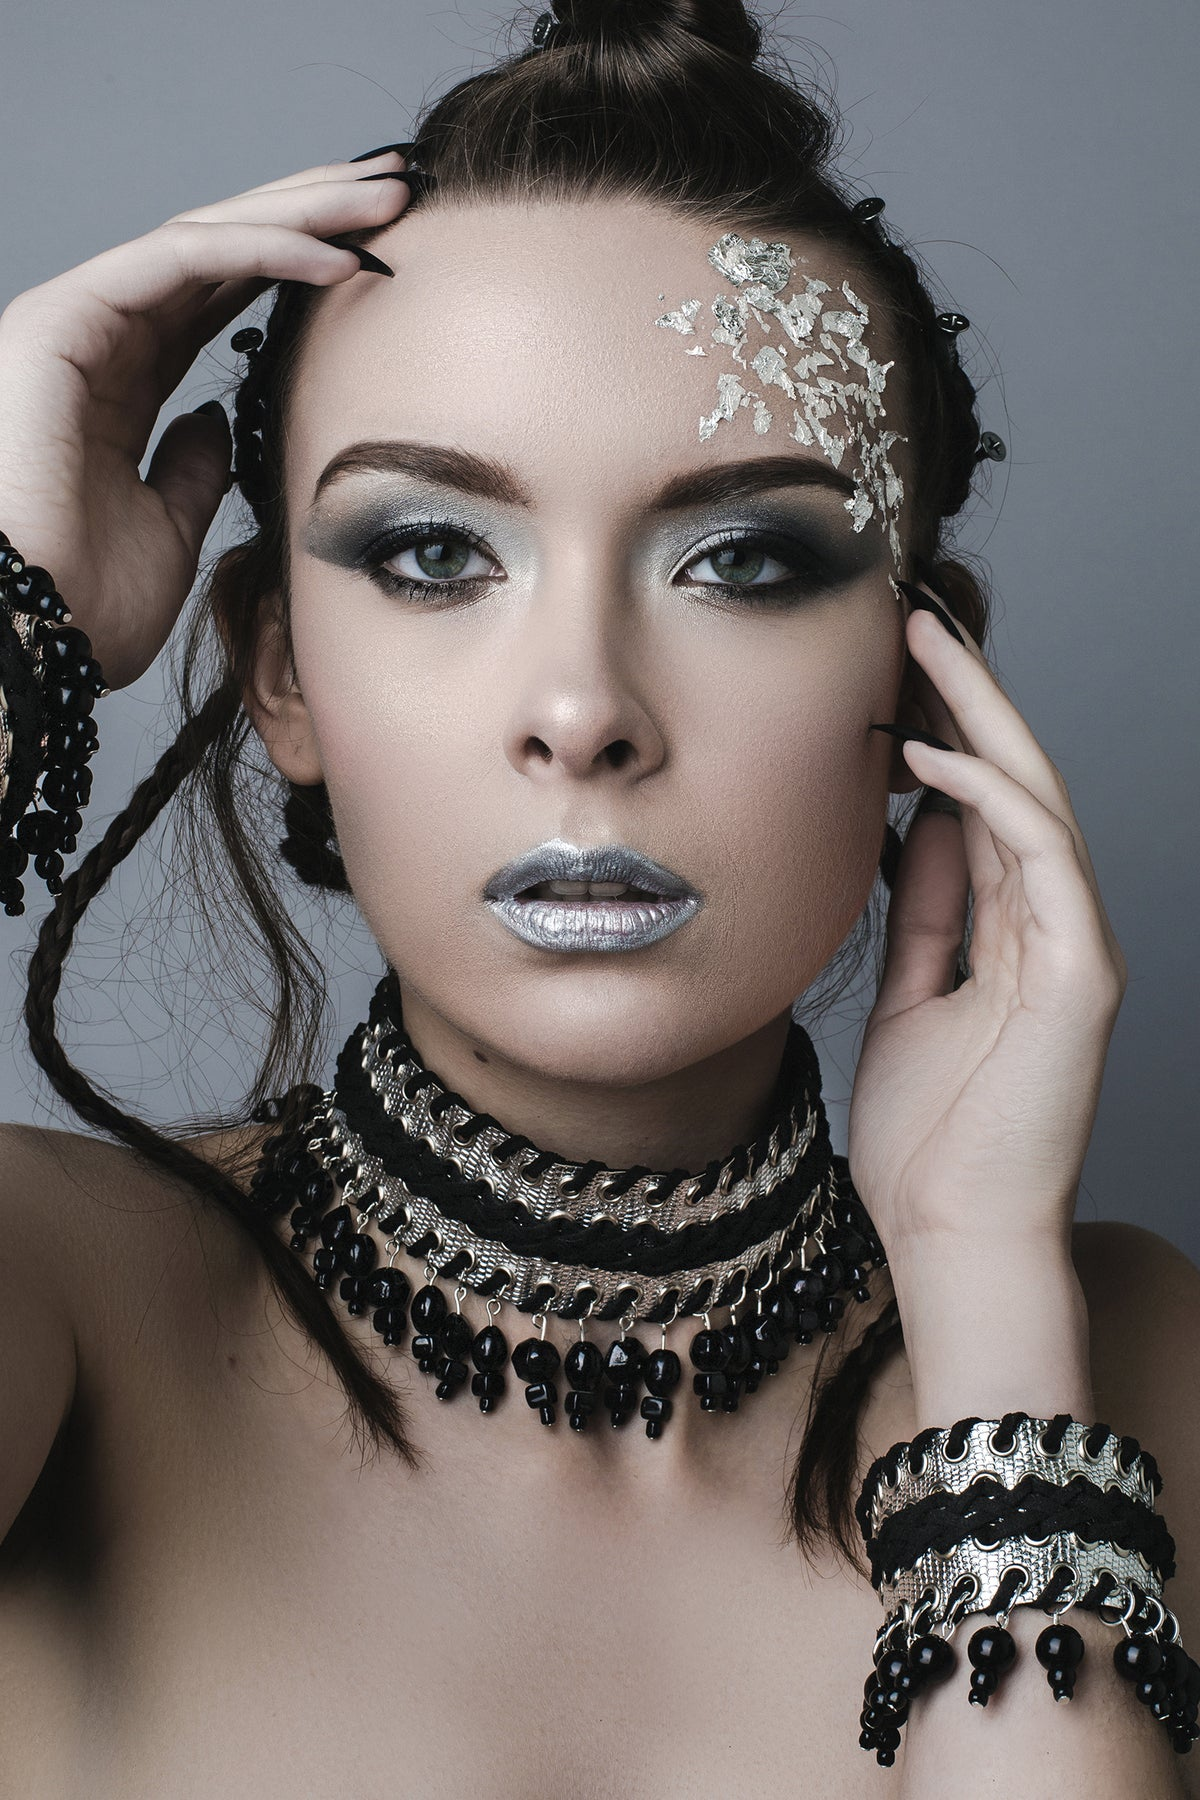 Image of Silver collar with black beads